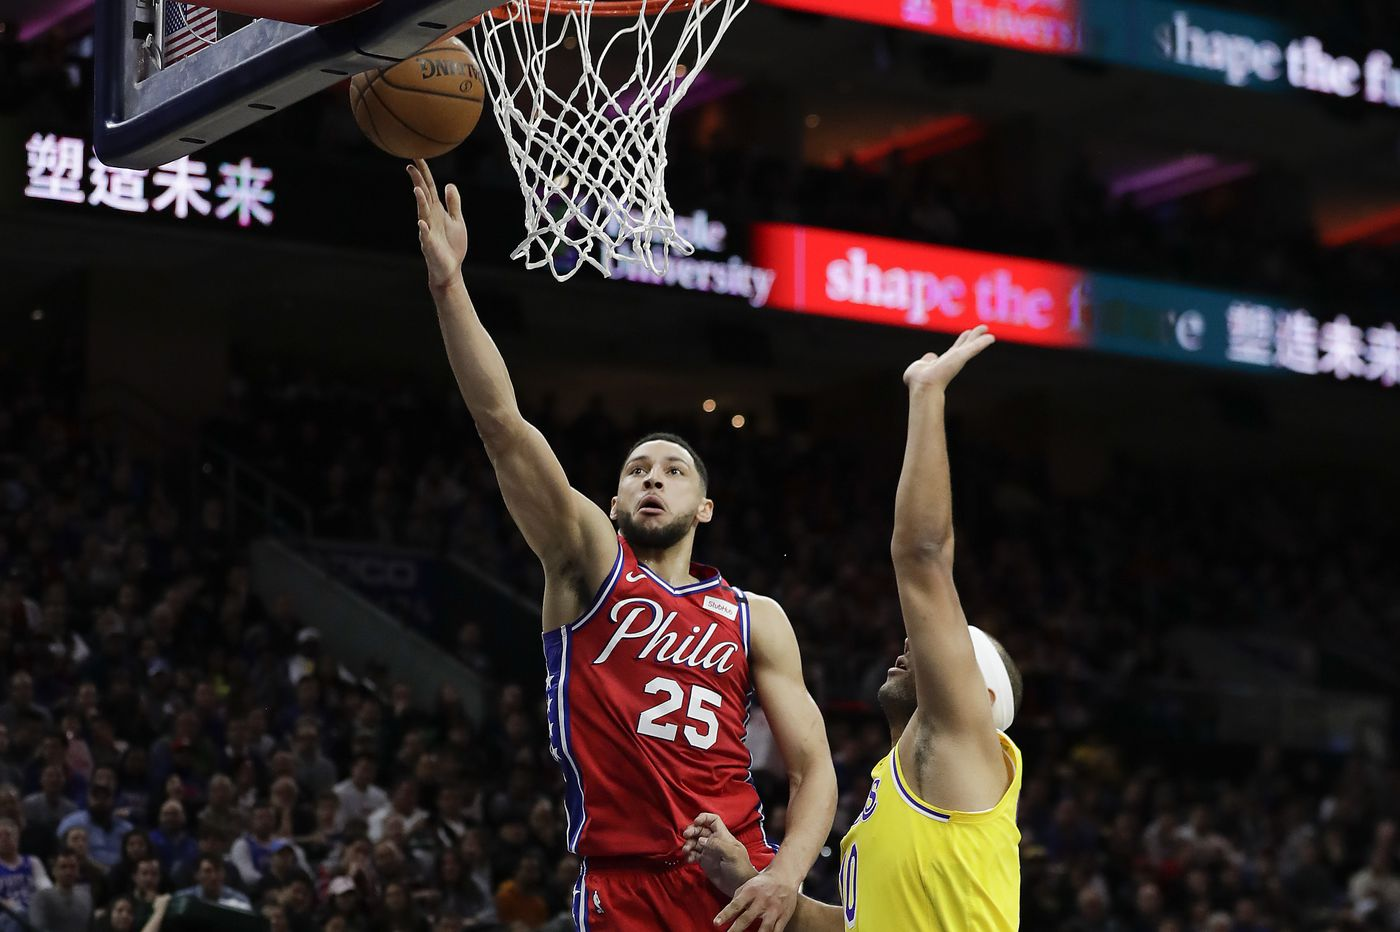 A few thoughts on Ben Simmons' present and future, vis-a-vis the Wall-Westbrook trade | David Murphy